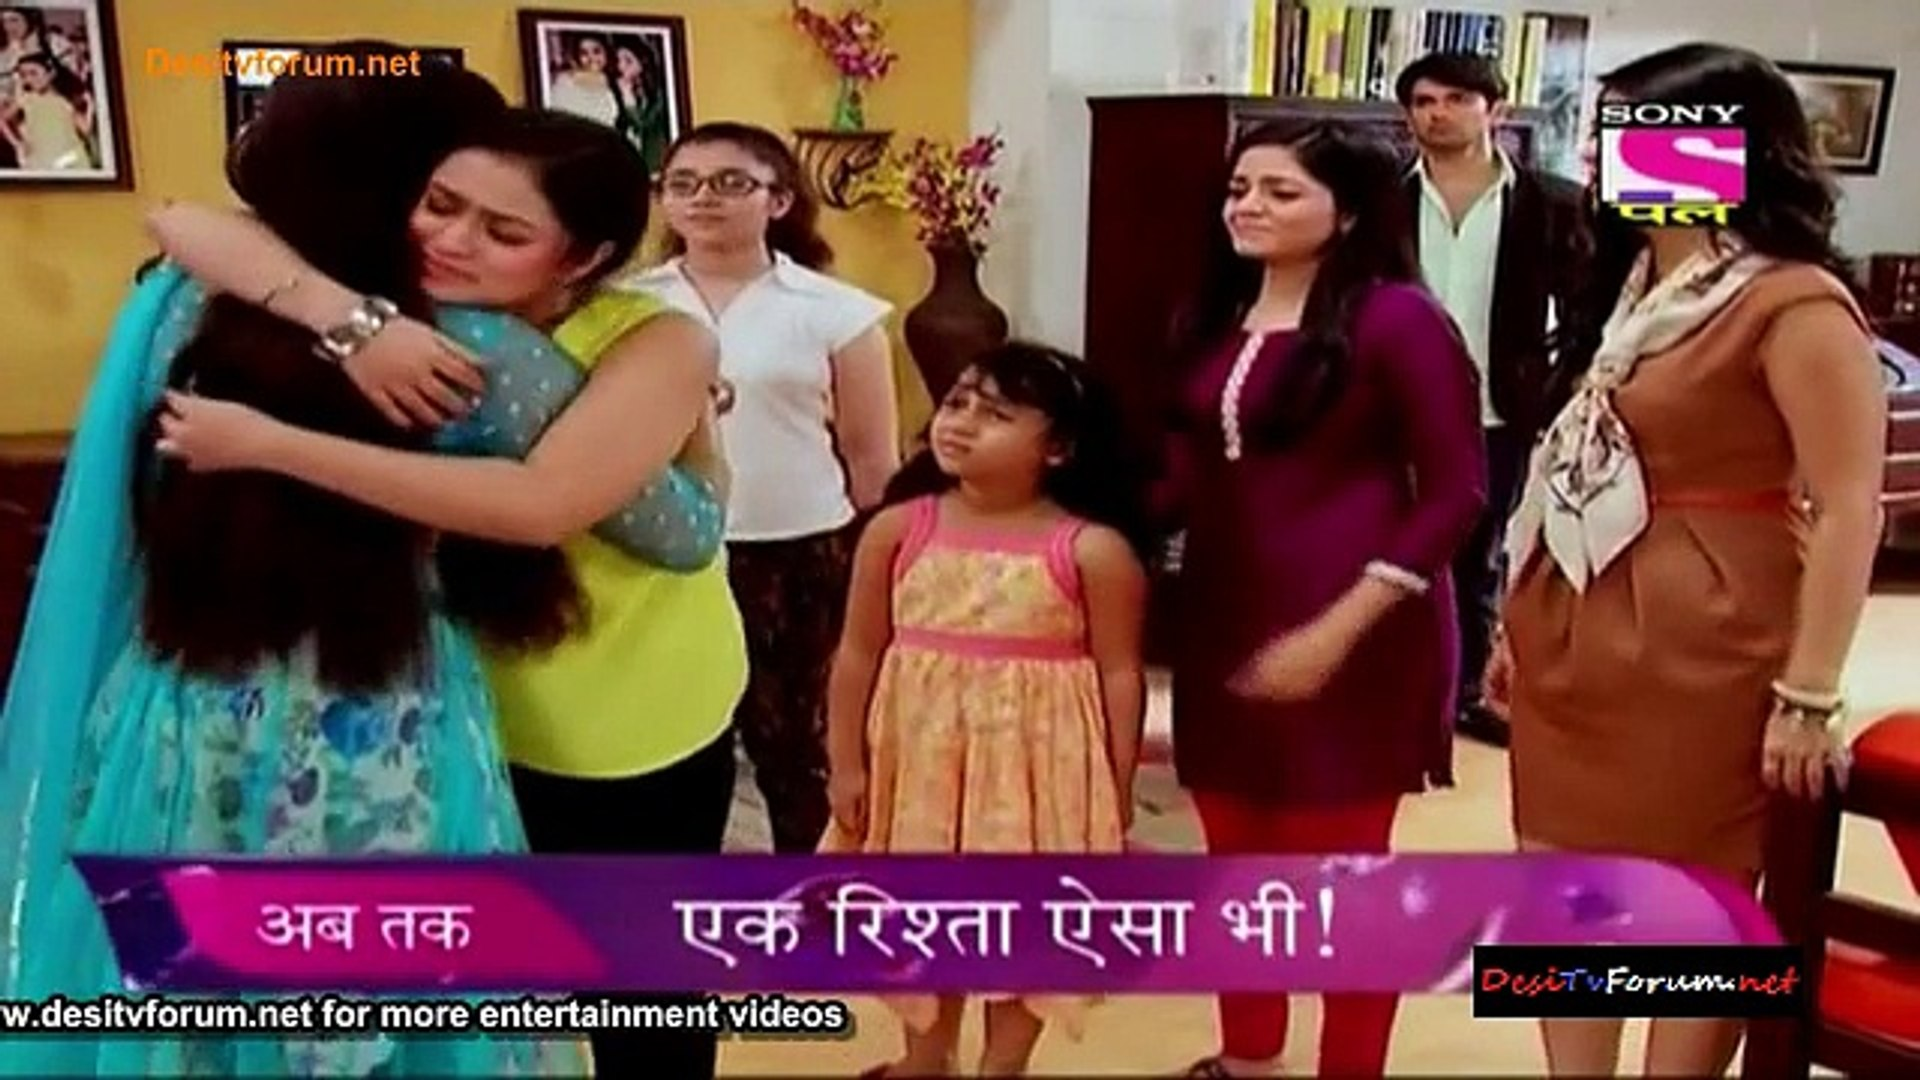 Ek Rishta Aisa Bhi 15 December 2014 Video Part 1